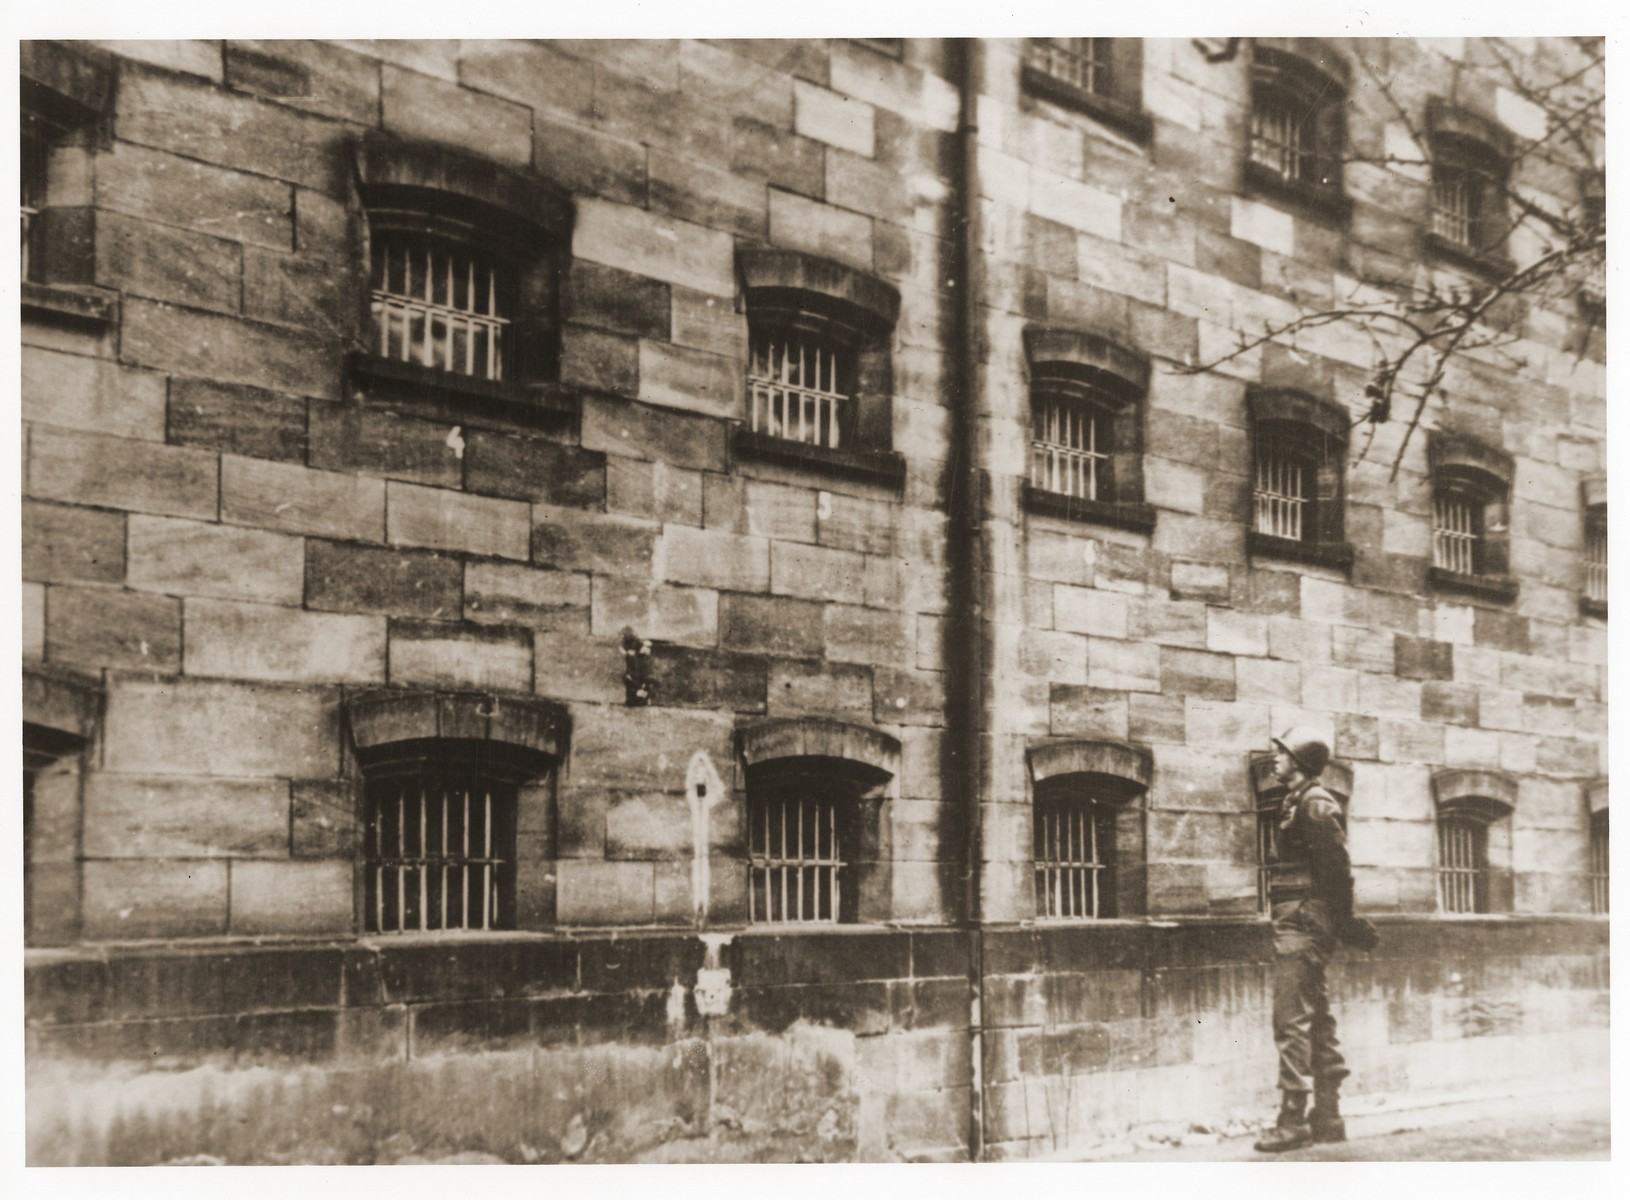 An American soldier stands guard outside the prison where the defendants were held during the International Military Tribunal trial of war criminals at Nuremberg.